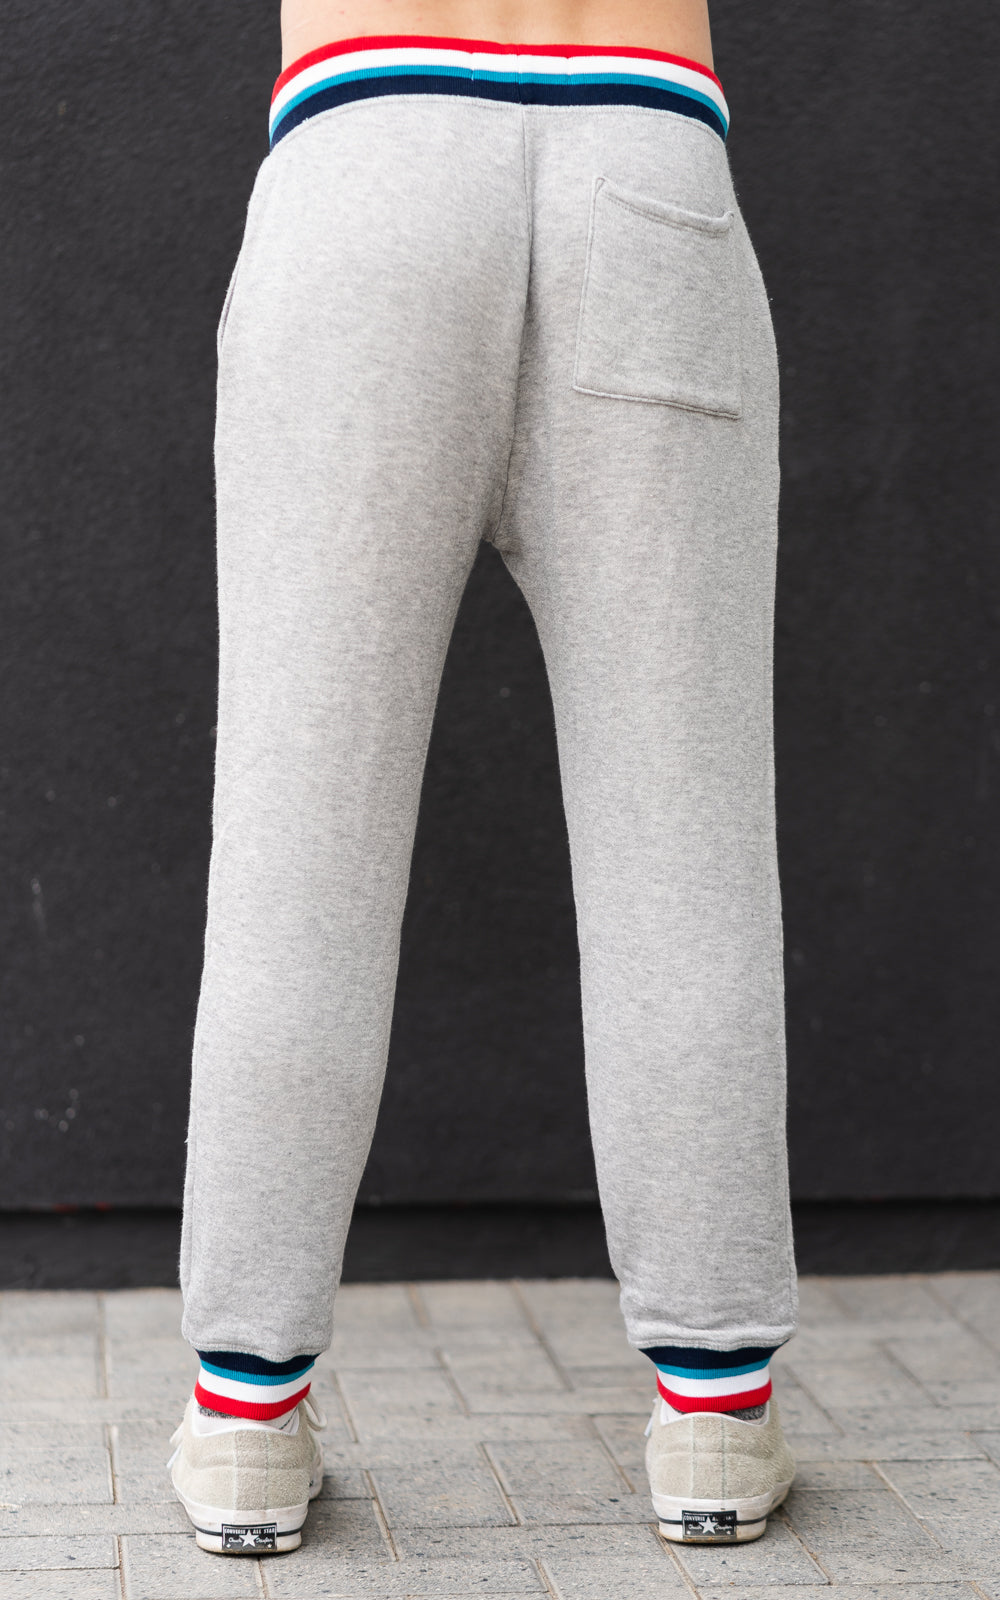 Sol Angeles Sweatpants in grey with red, white, and blue bands